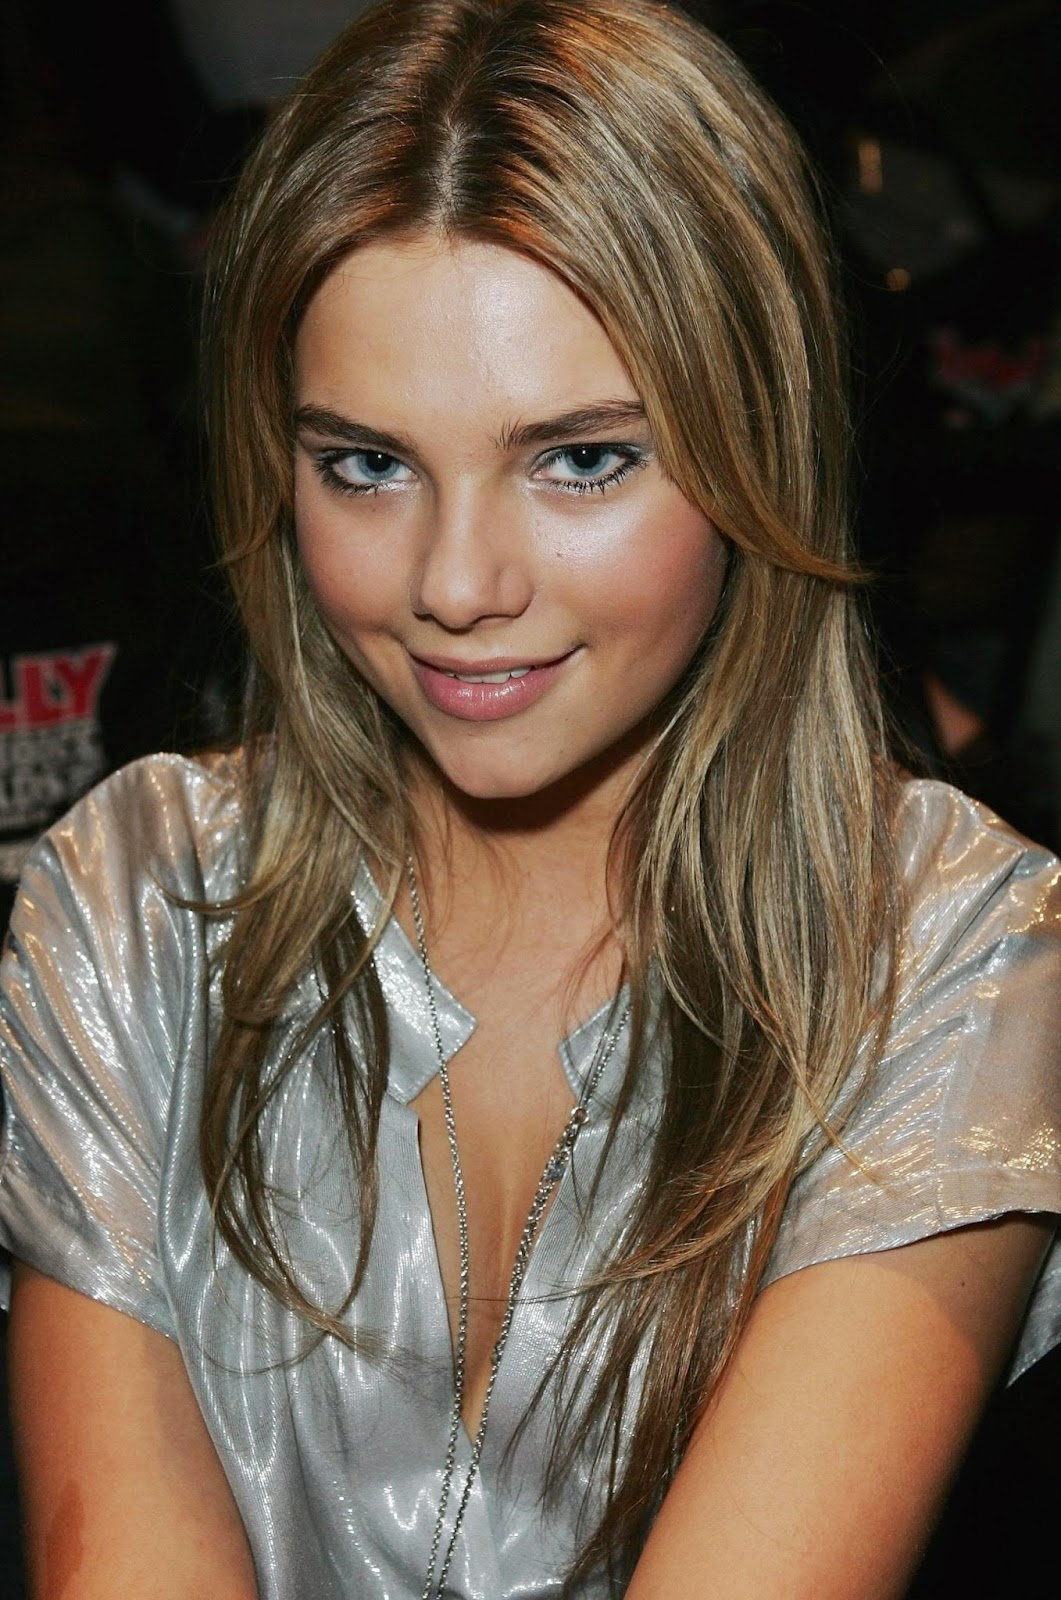 Photo And Biography Indiana Evans